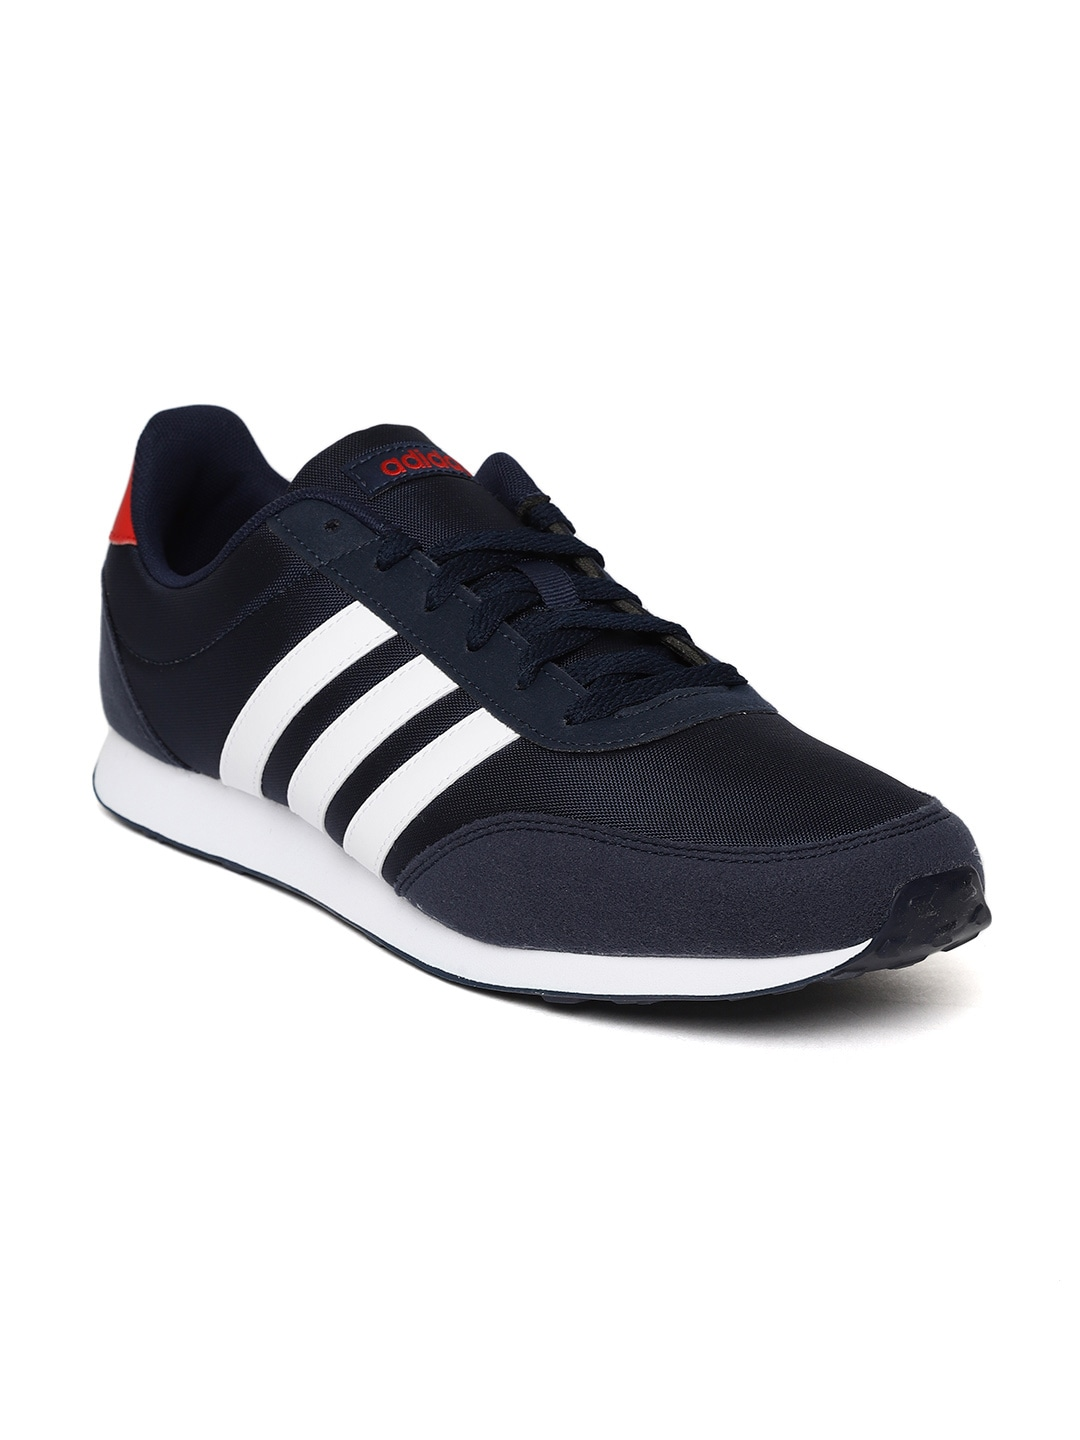 meet 58f2a ce8b1 Adidas Racer - Buy Adidas Racer online in India